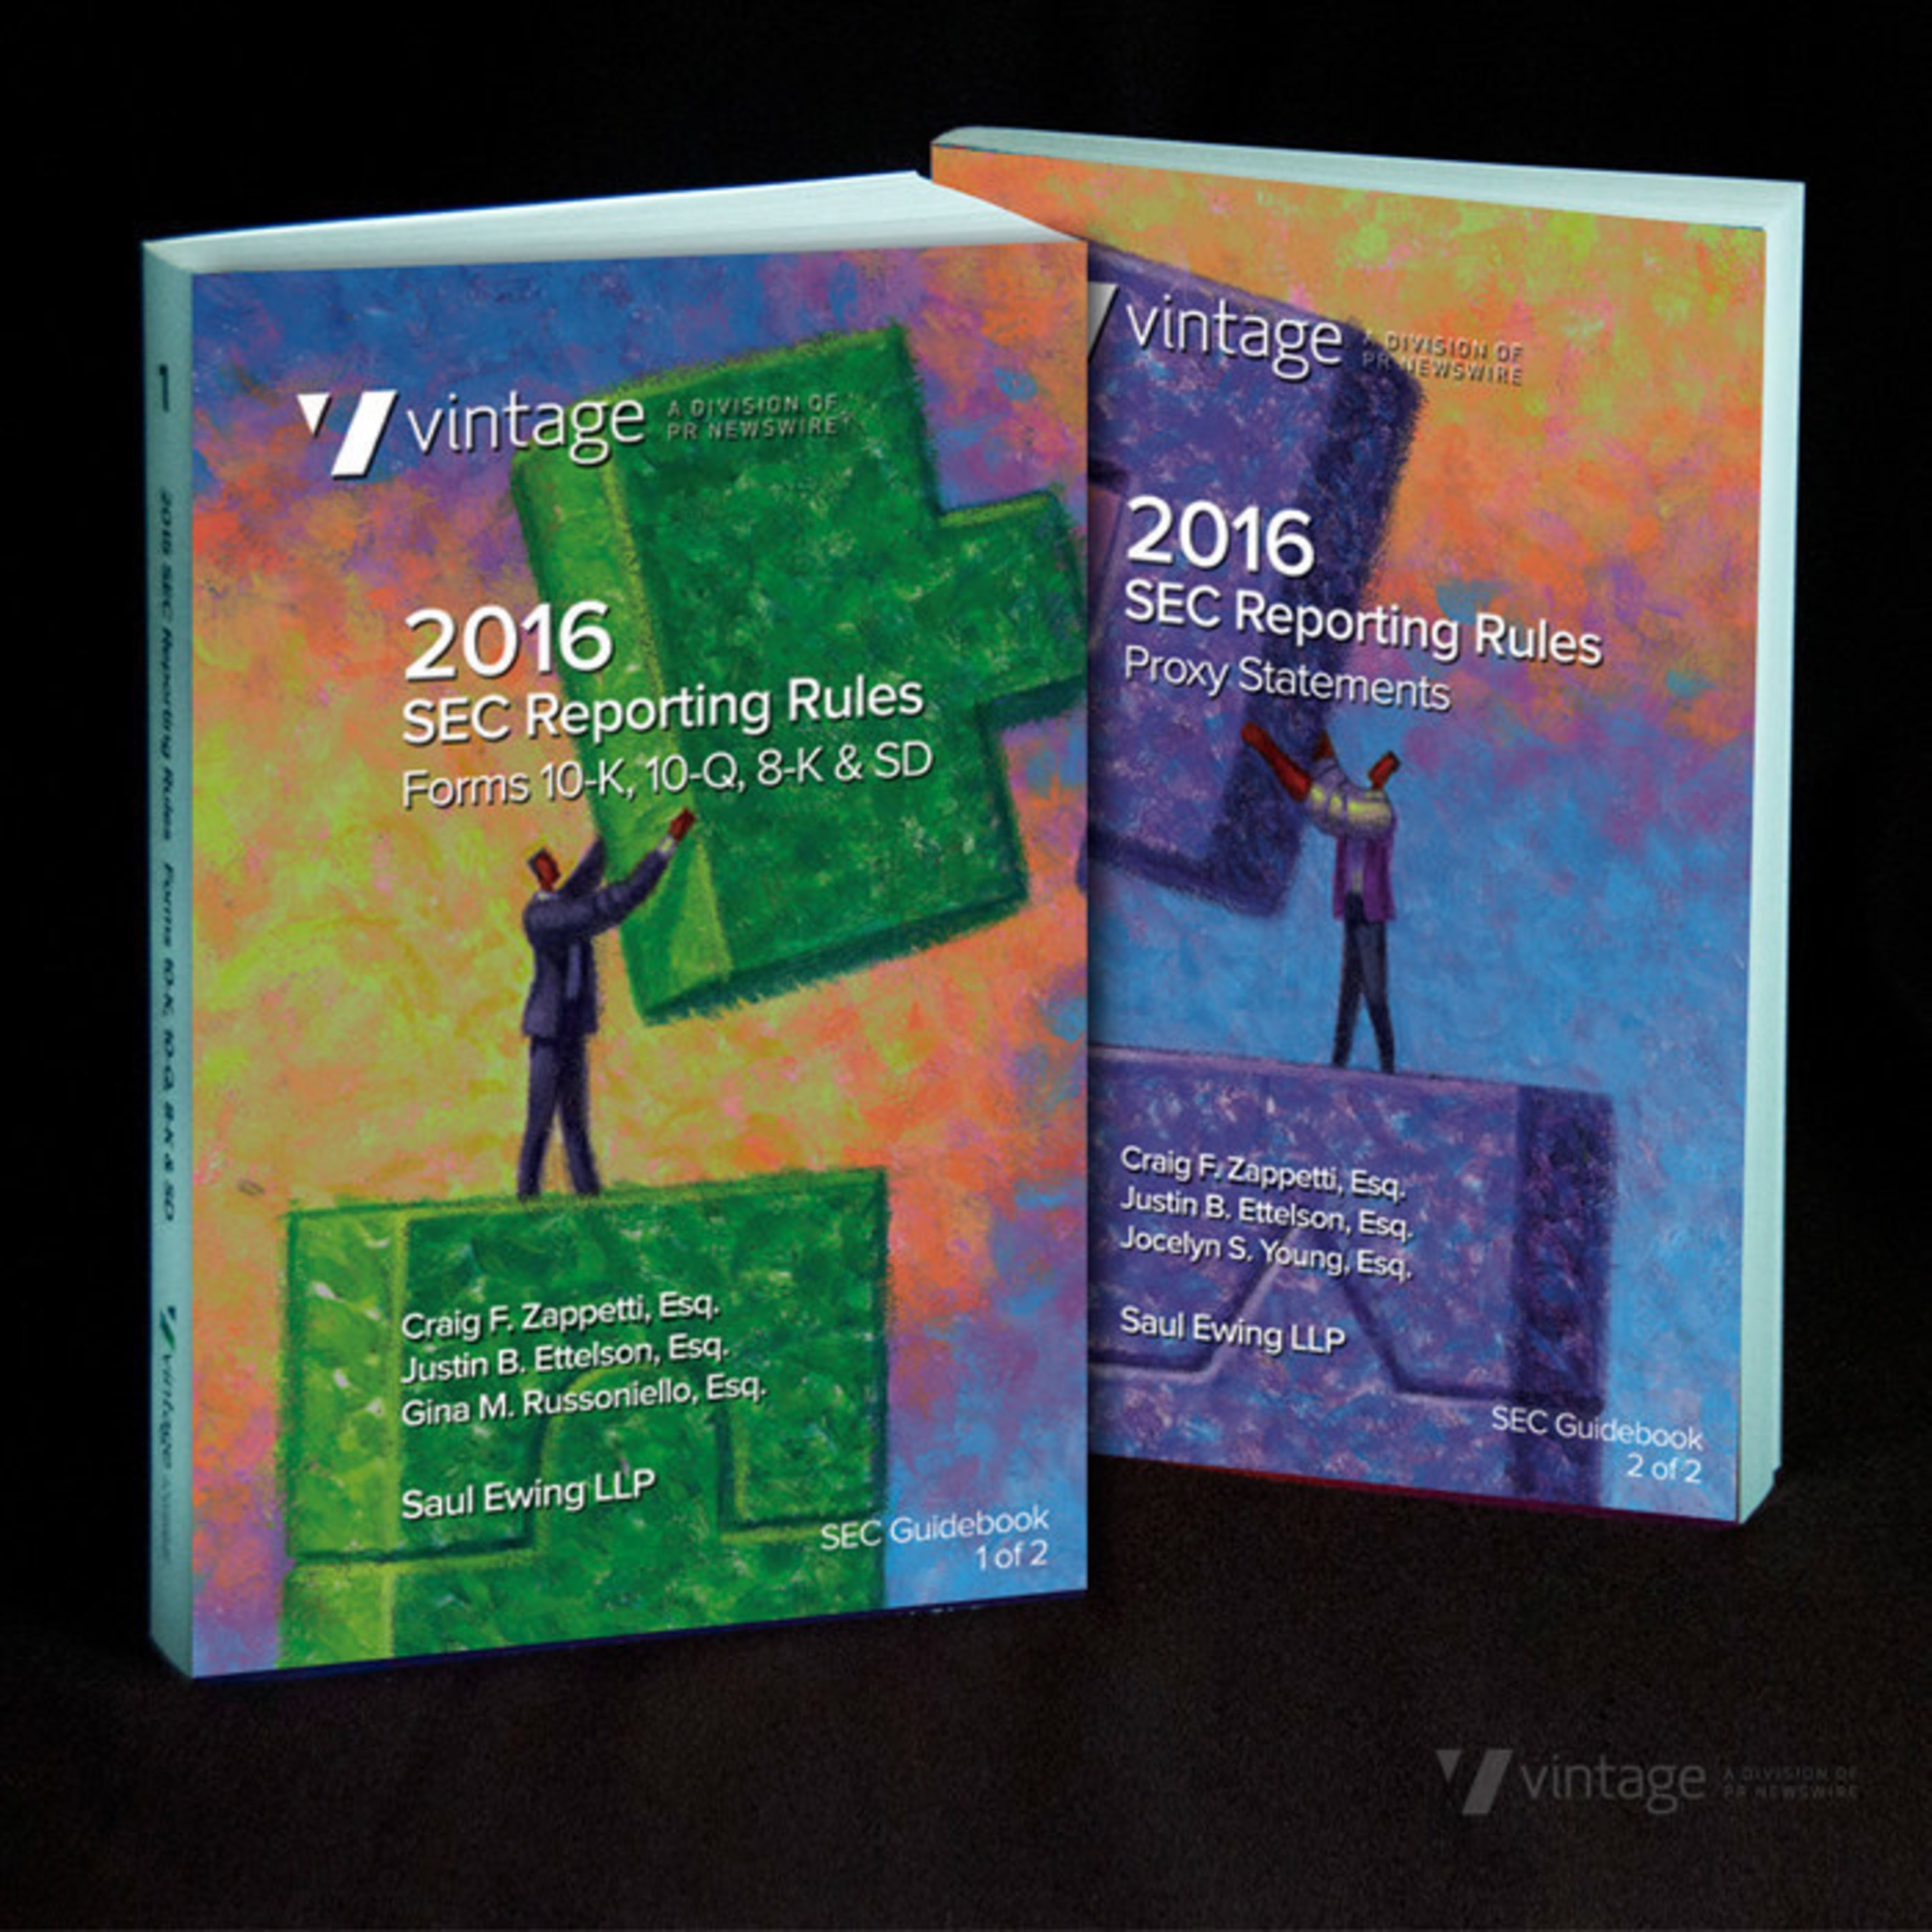 Request a free set of 2016 SEC Reporting Rules Guidebooks: Forms 10-K, 10-Q, 8-K, SD and Proxy Statements now. http://e.prnewswire.com/2016-SEC-GUIDEBOOKS.html